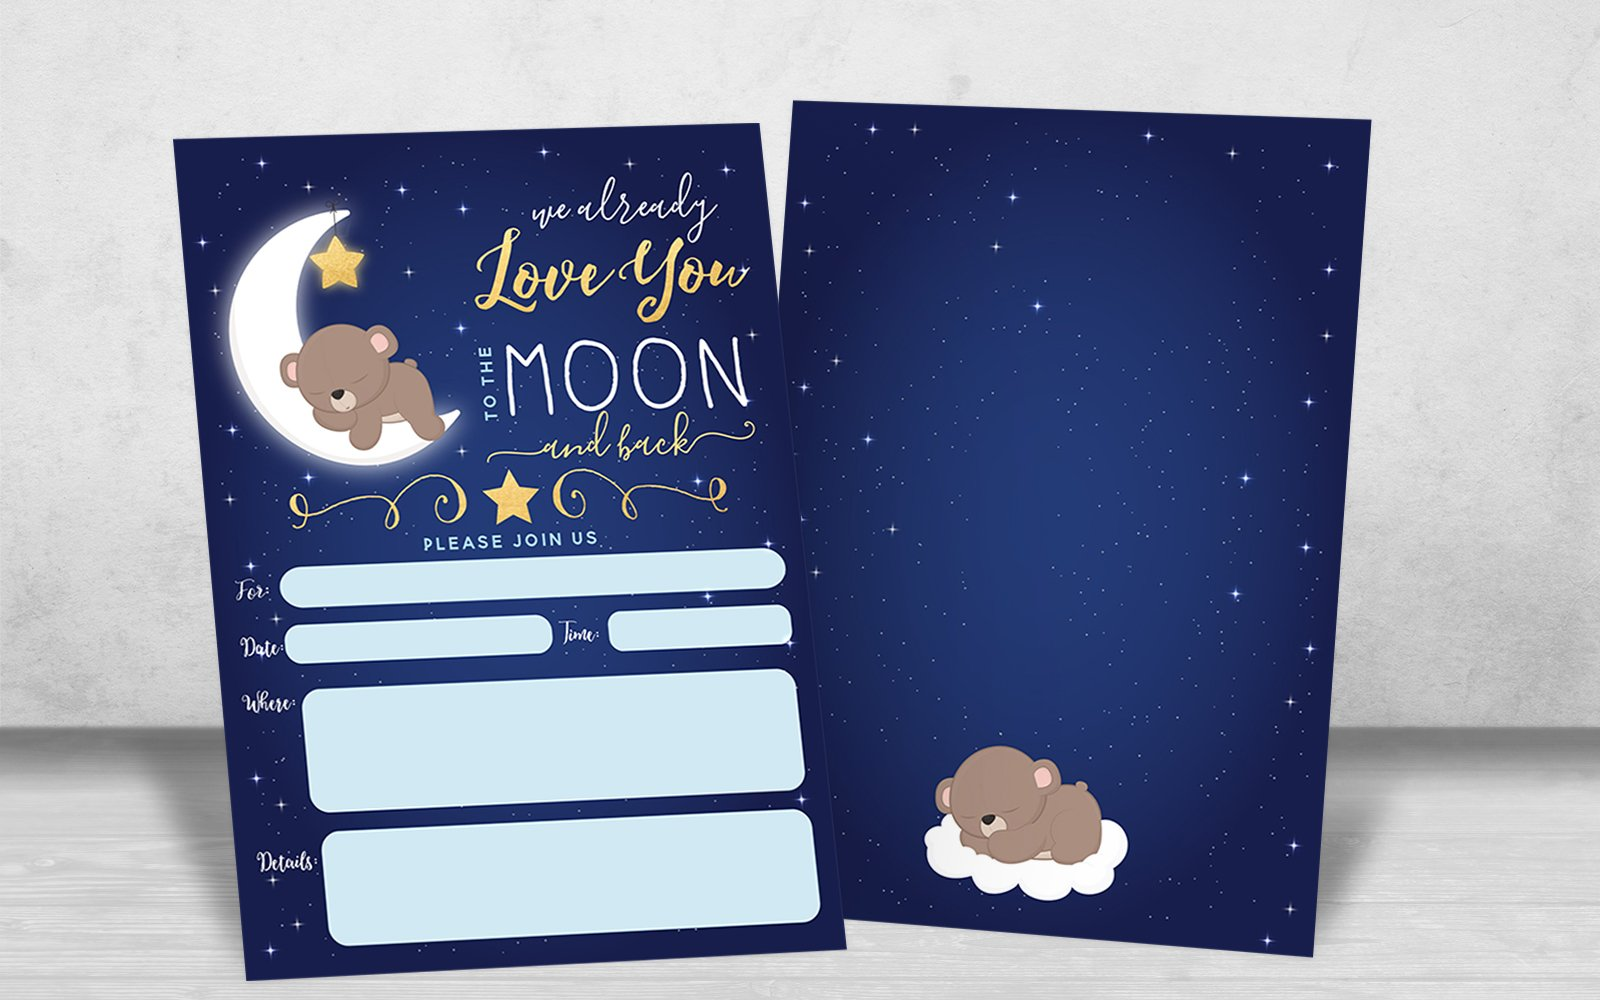 Boy Baby Shower Invitation, Love You To the Moon and back Baby Shower Invitation, Bear Baby Shower invite, Twinkle Twinkle Little Sar, 20 Fill in Invitations and Envelopes by Your Main Event Prints (Image #3)